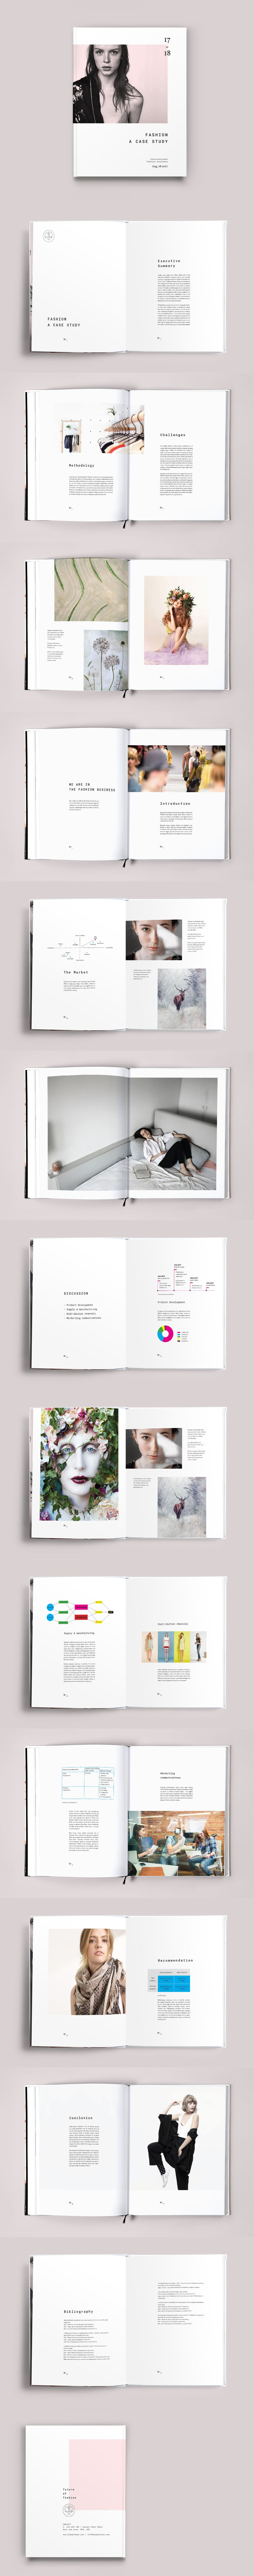 Fashion Case Study Template InDesign INDD - 28 Pages, A4 & US letter ...